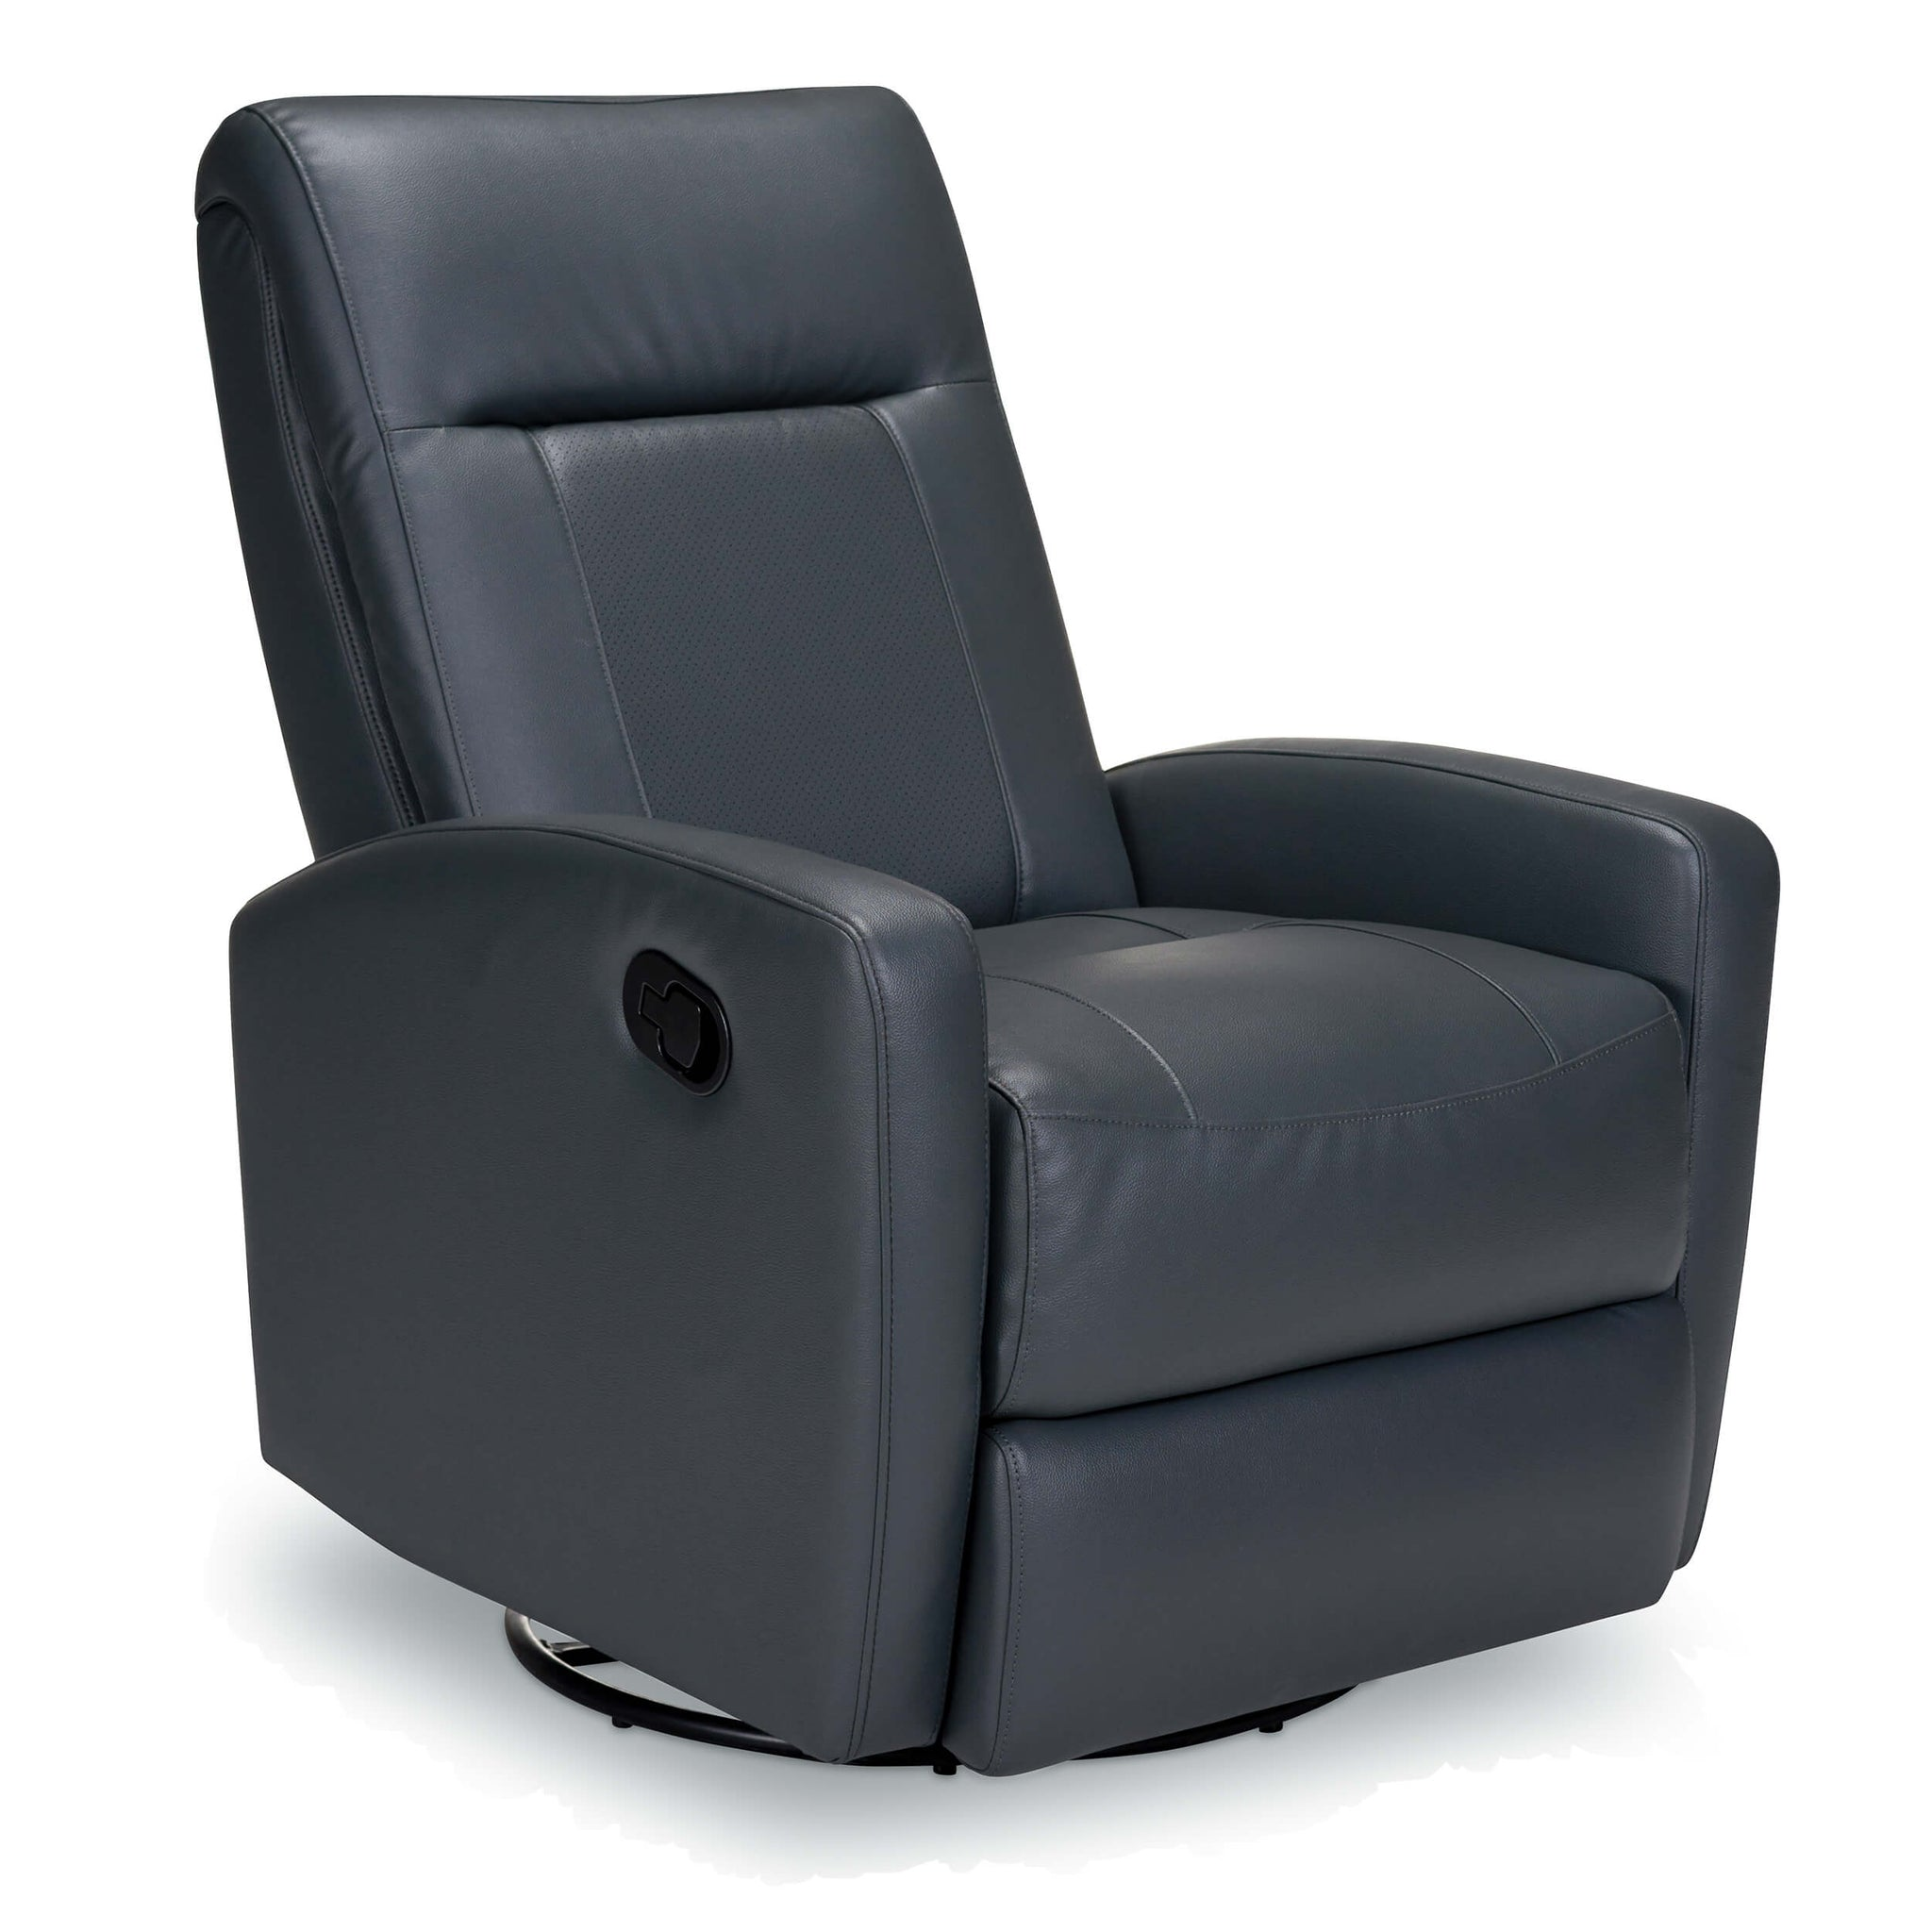 Superb Stefan Swivel Glider Recliner Customarchery Wood Chair Design Ideas Customarcherynet